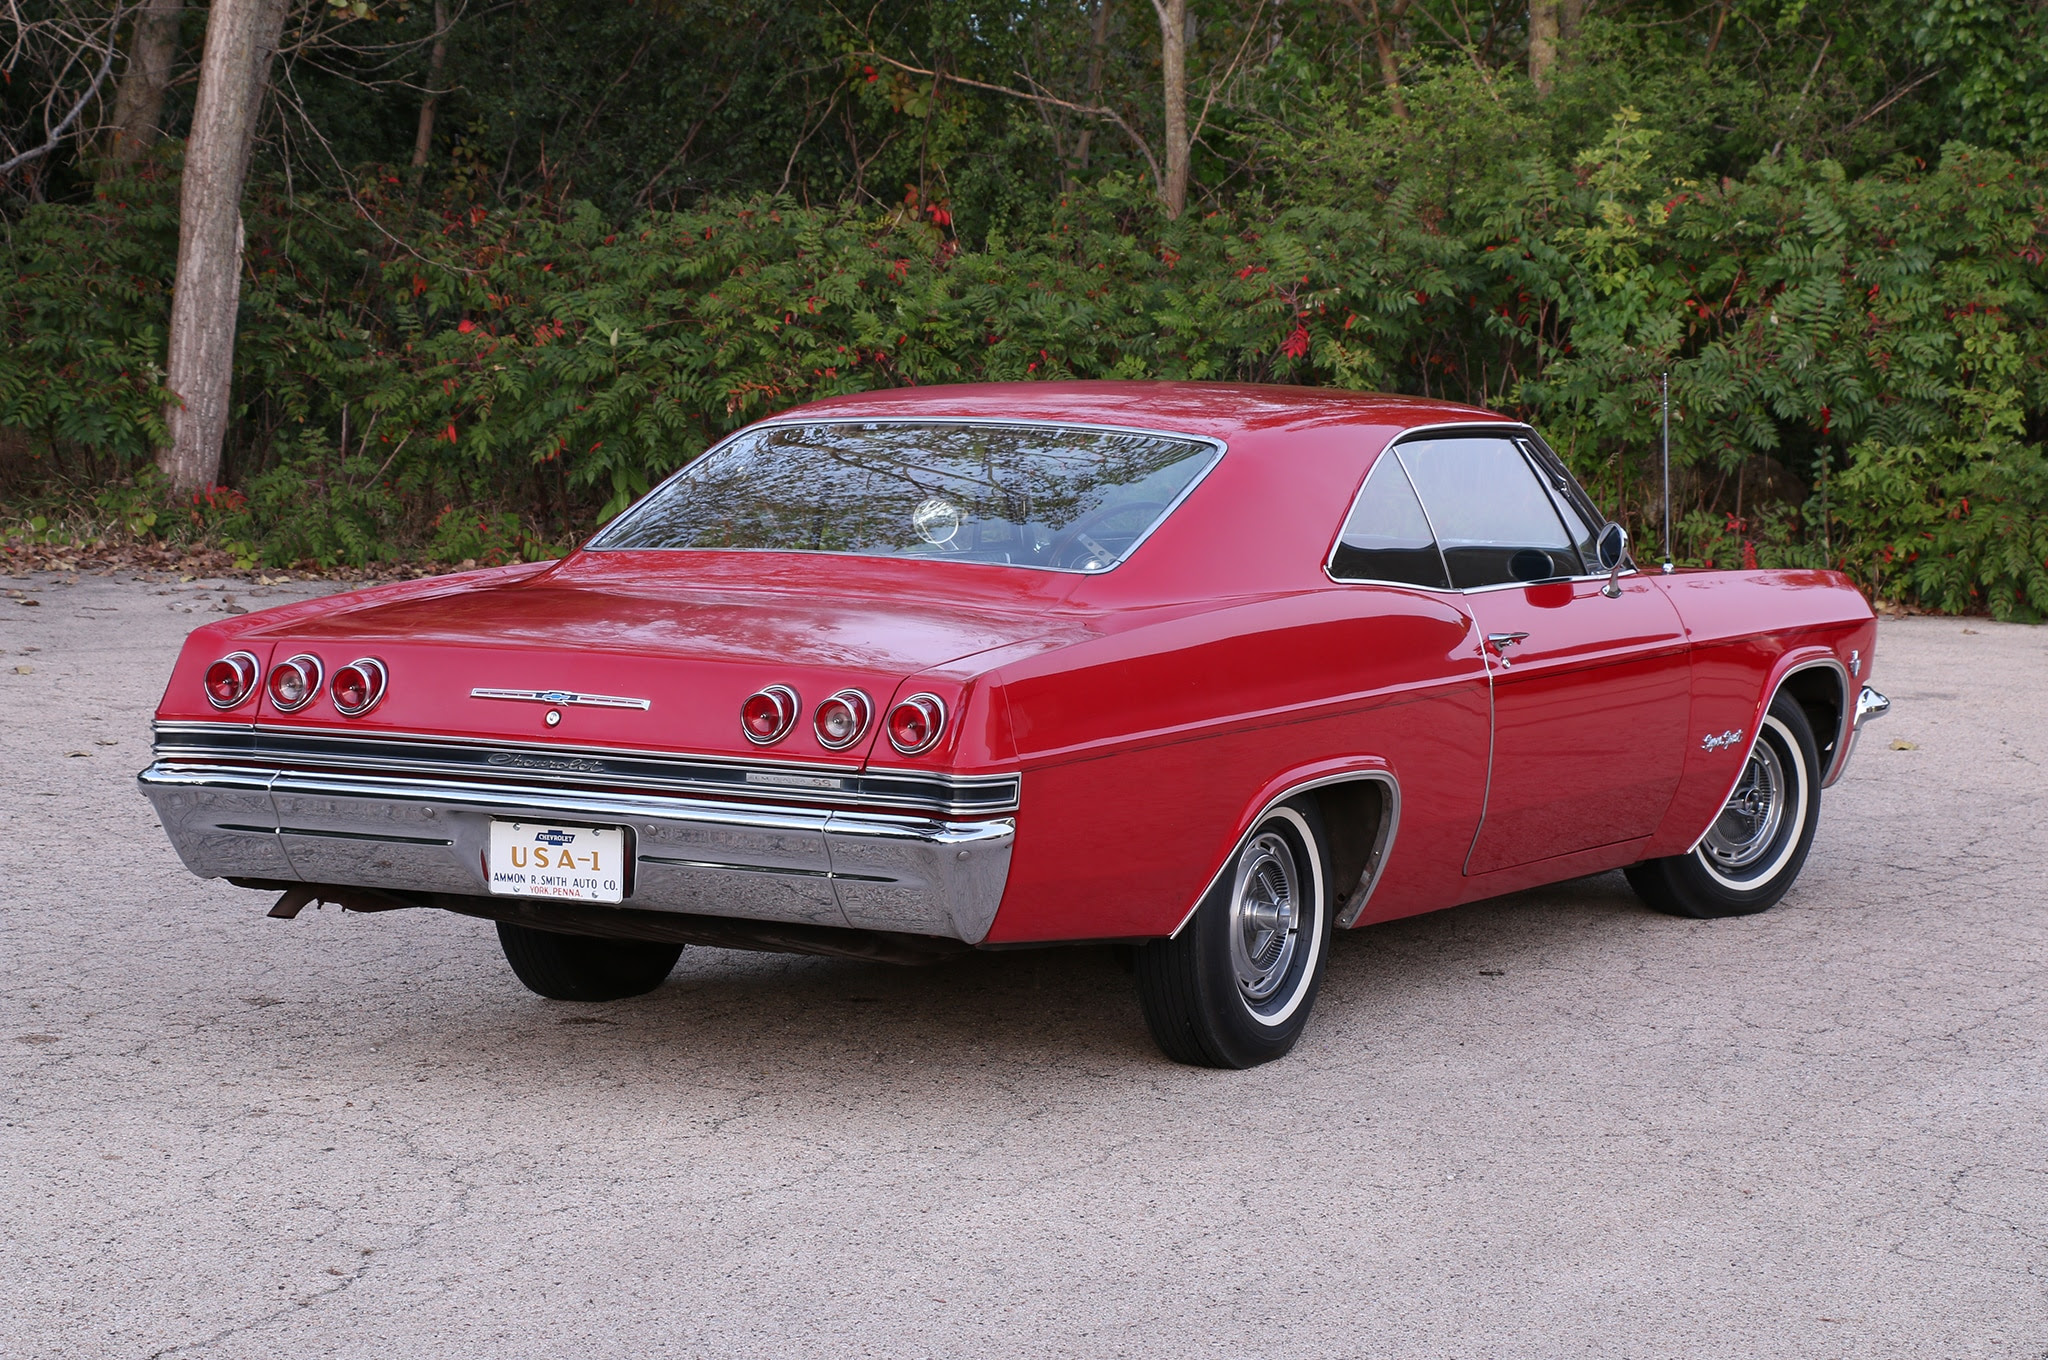 Immaculate Unrestored 1965 Chevrolet Impala Ss Shows Just 11 000 Miles Hot Rod Network Bmw Vision Hyundai Racing Lexus Is Blogspot Com